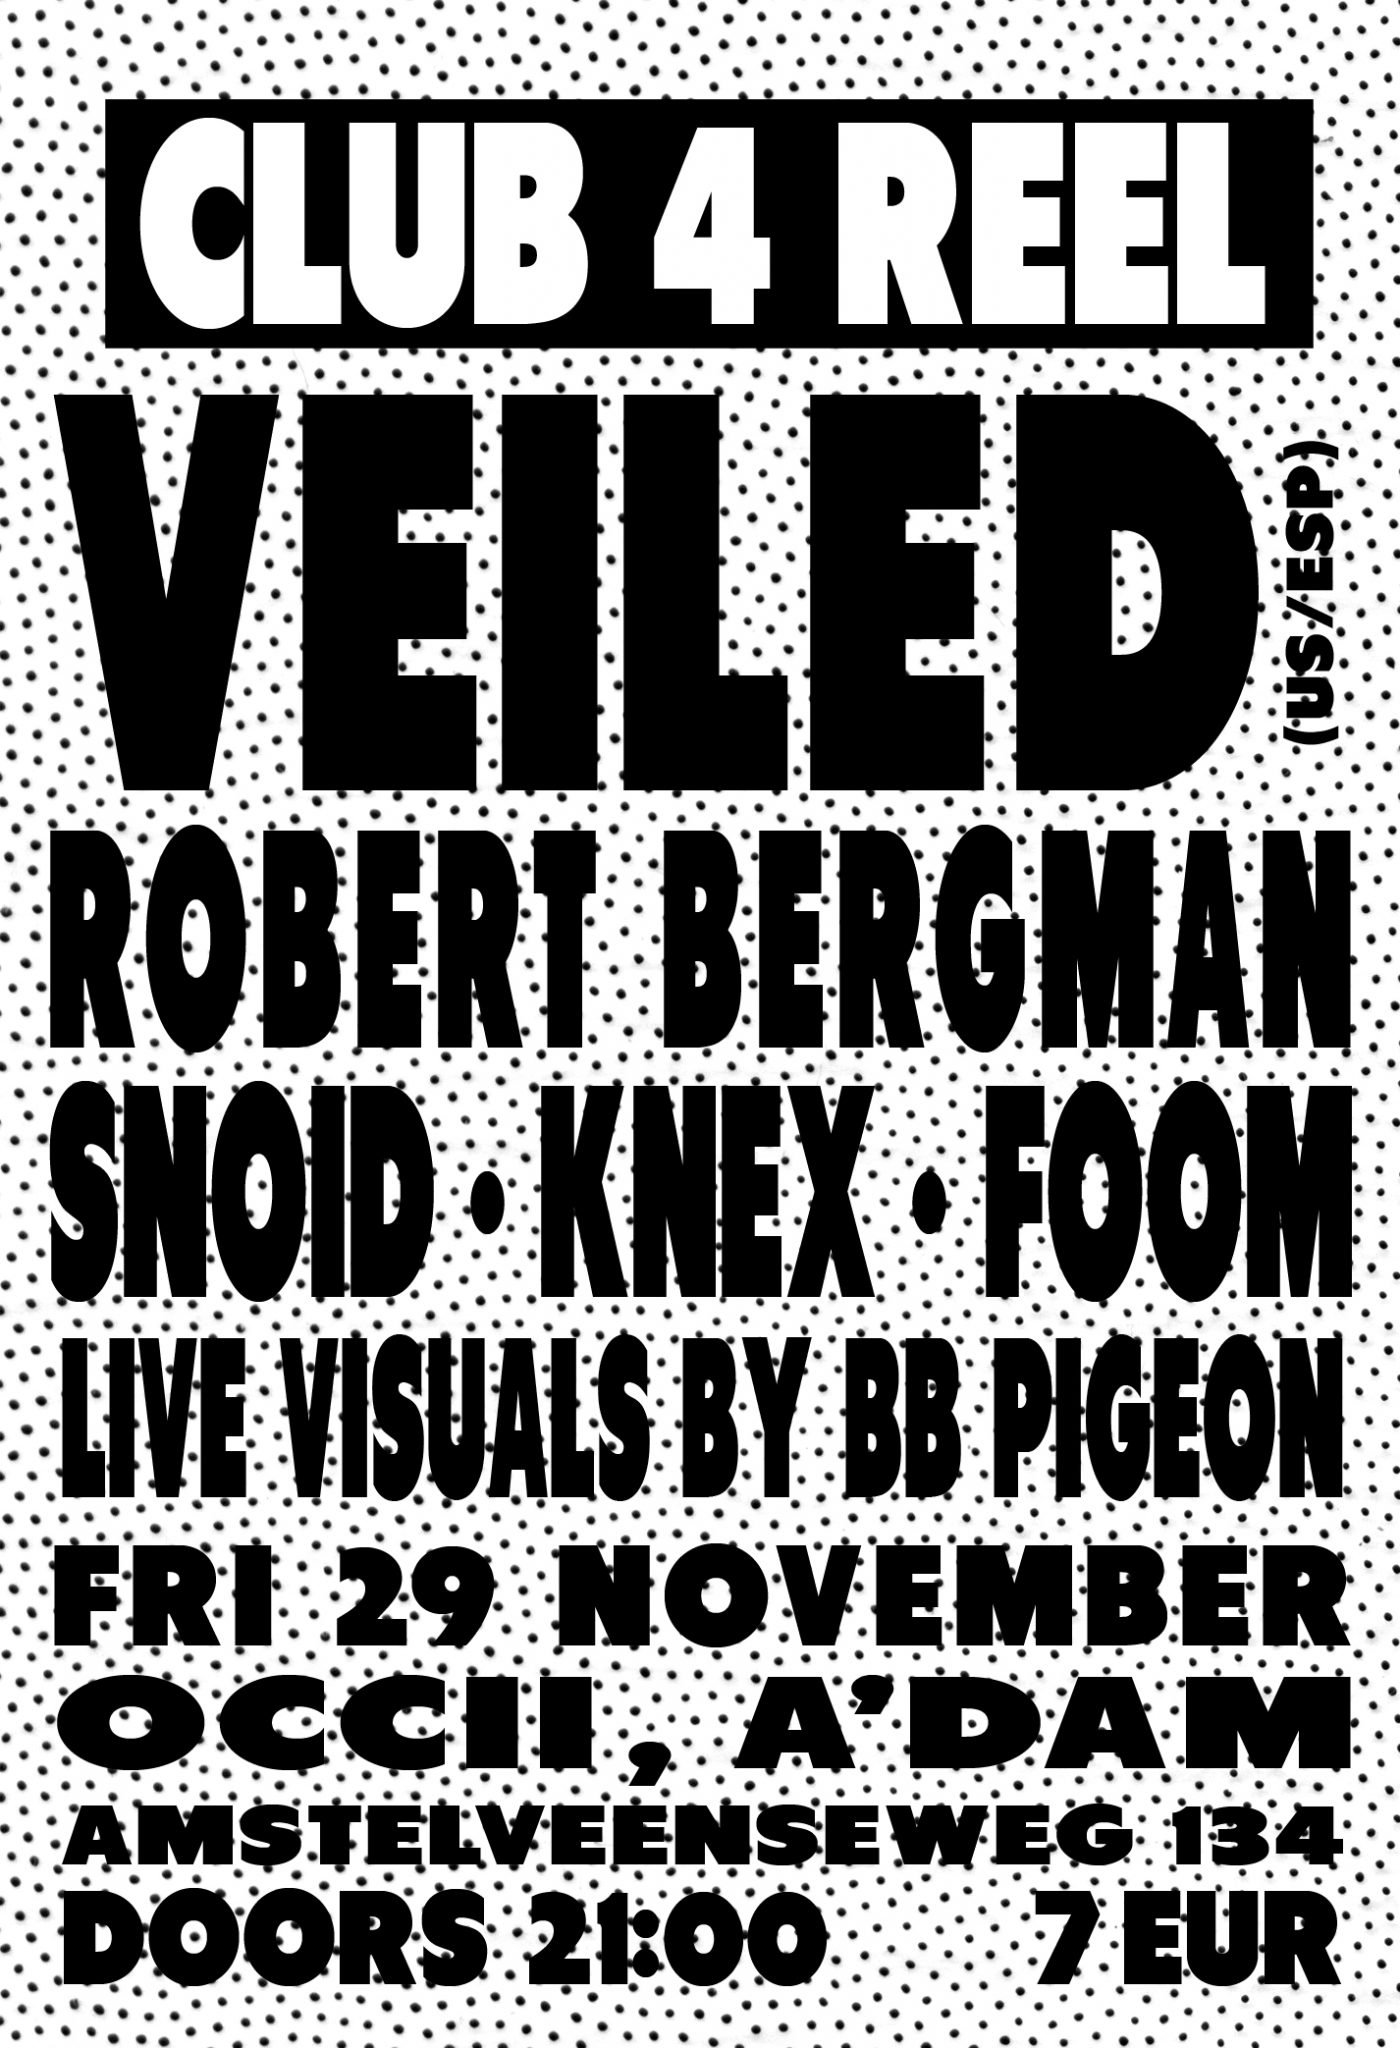 VEILED (us/es) + ROBERT BERGMAN + BB PIGEON + Club 4 Reel DJs FOOM, SNOID, COSMO KNEX